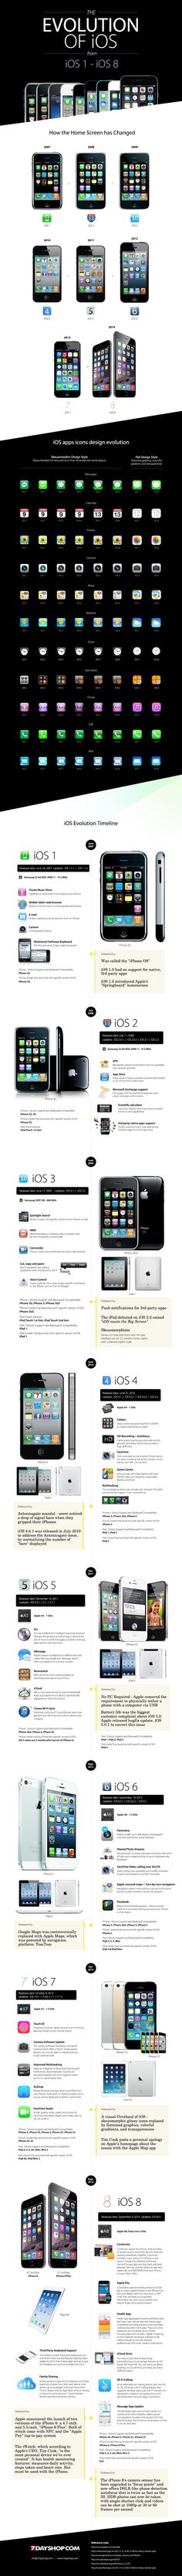 The Evolution of iOS from OS1 to OS8